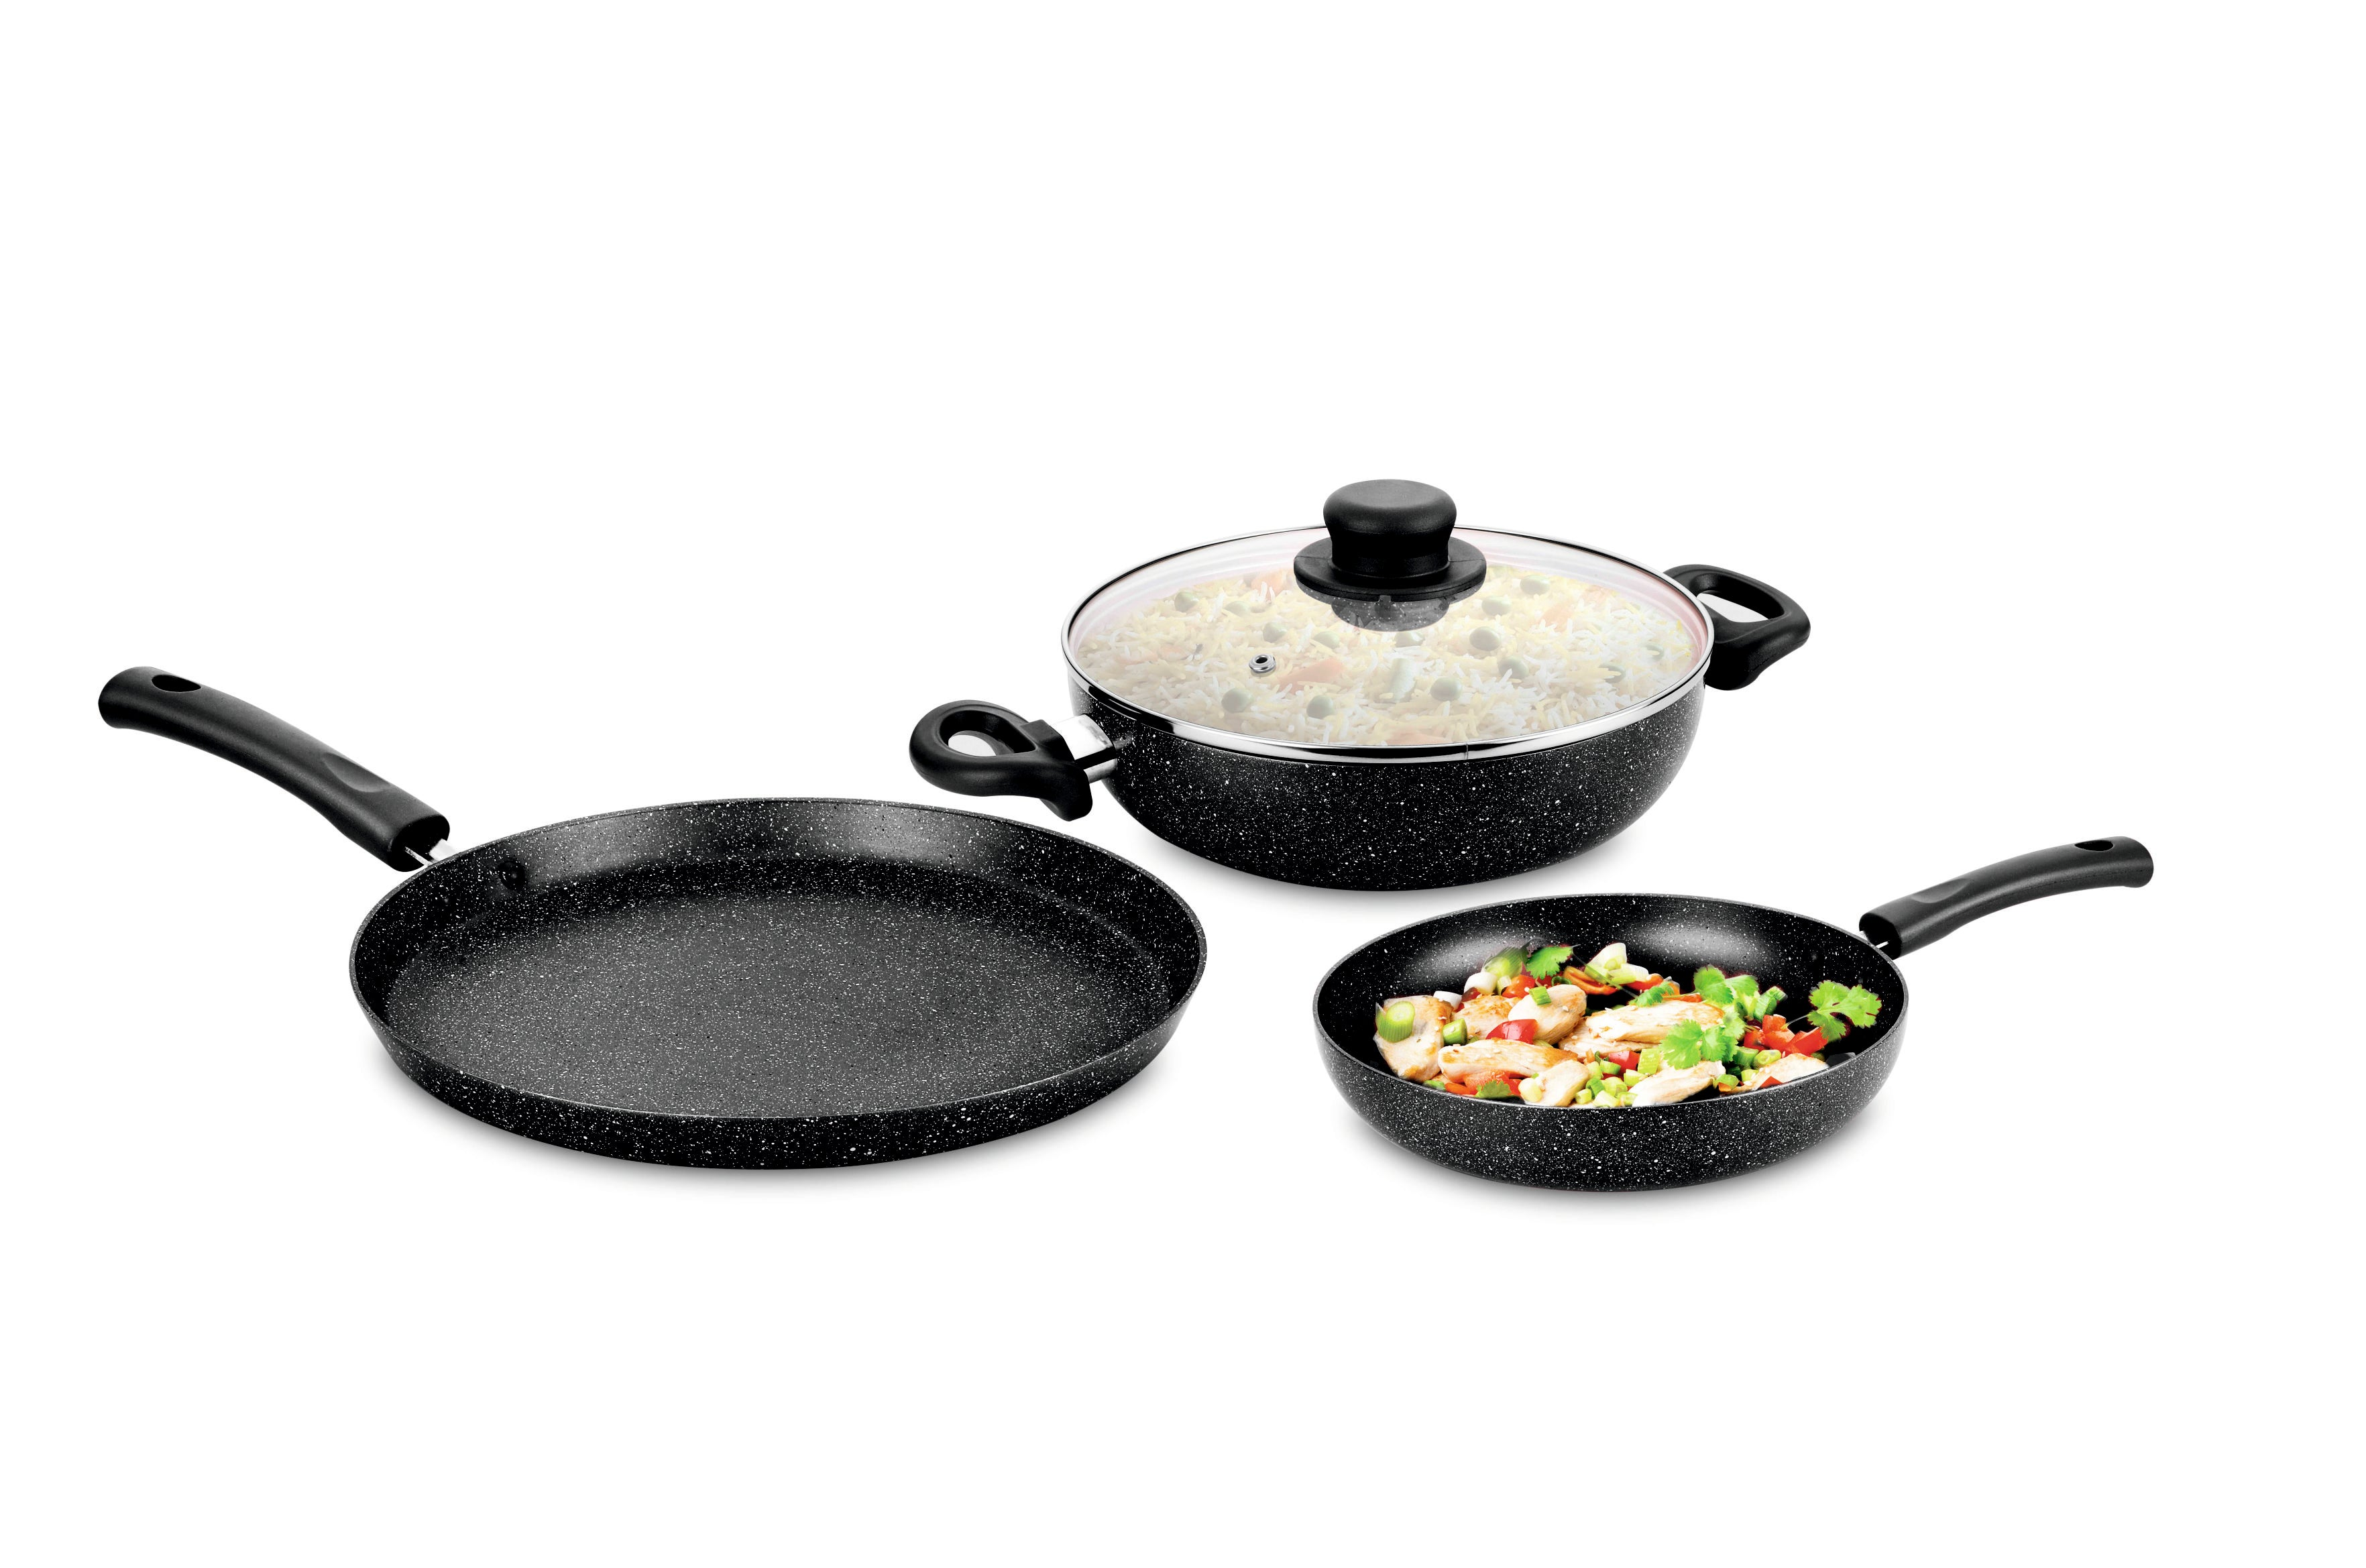 Granito Non Stick Cookware set S/3